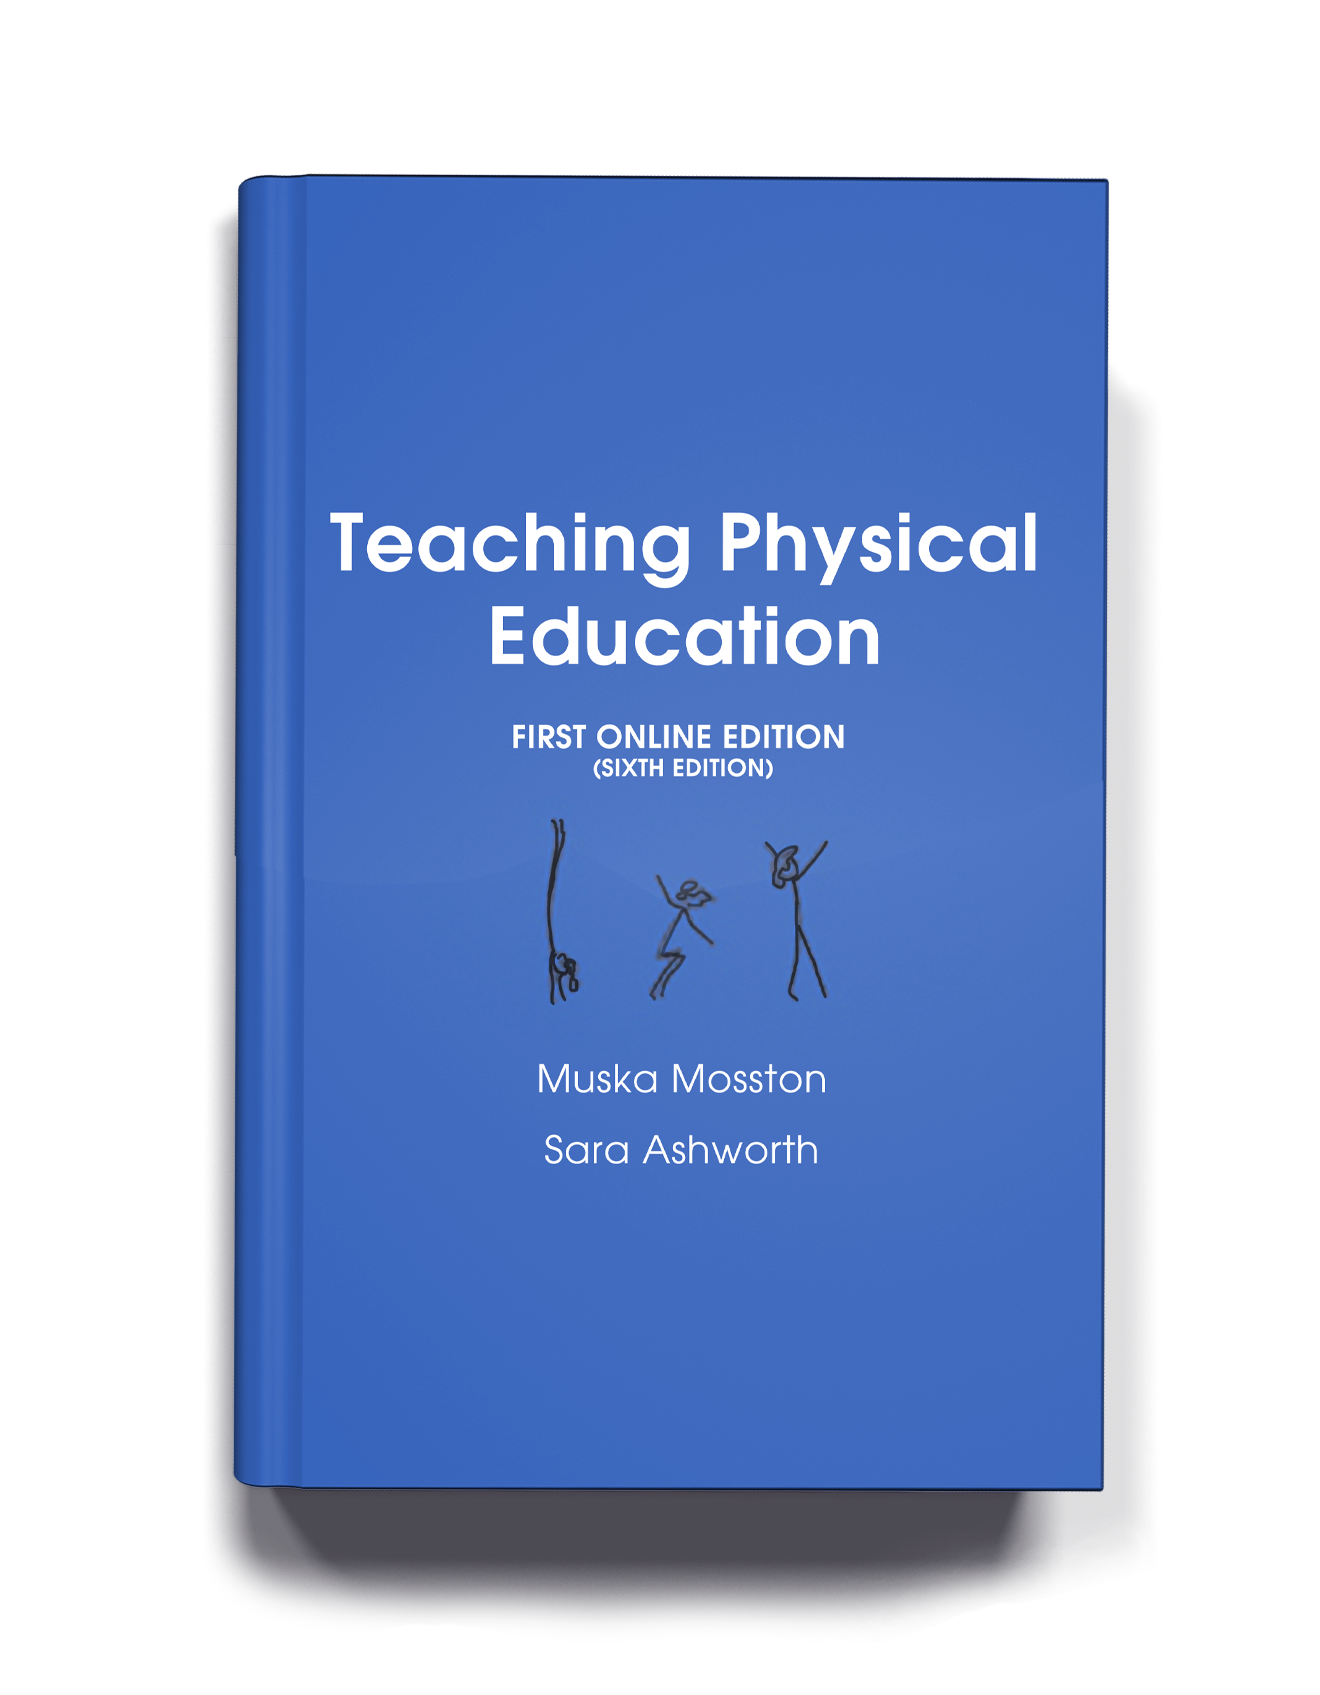 The Cover for Teaching Physical Education - 1st Online Edition by Muska Mosston and Sara Ashworth